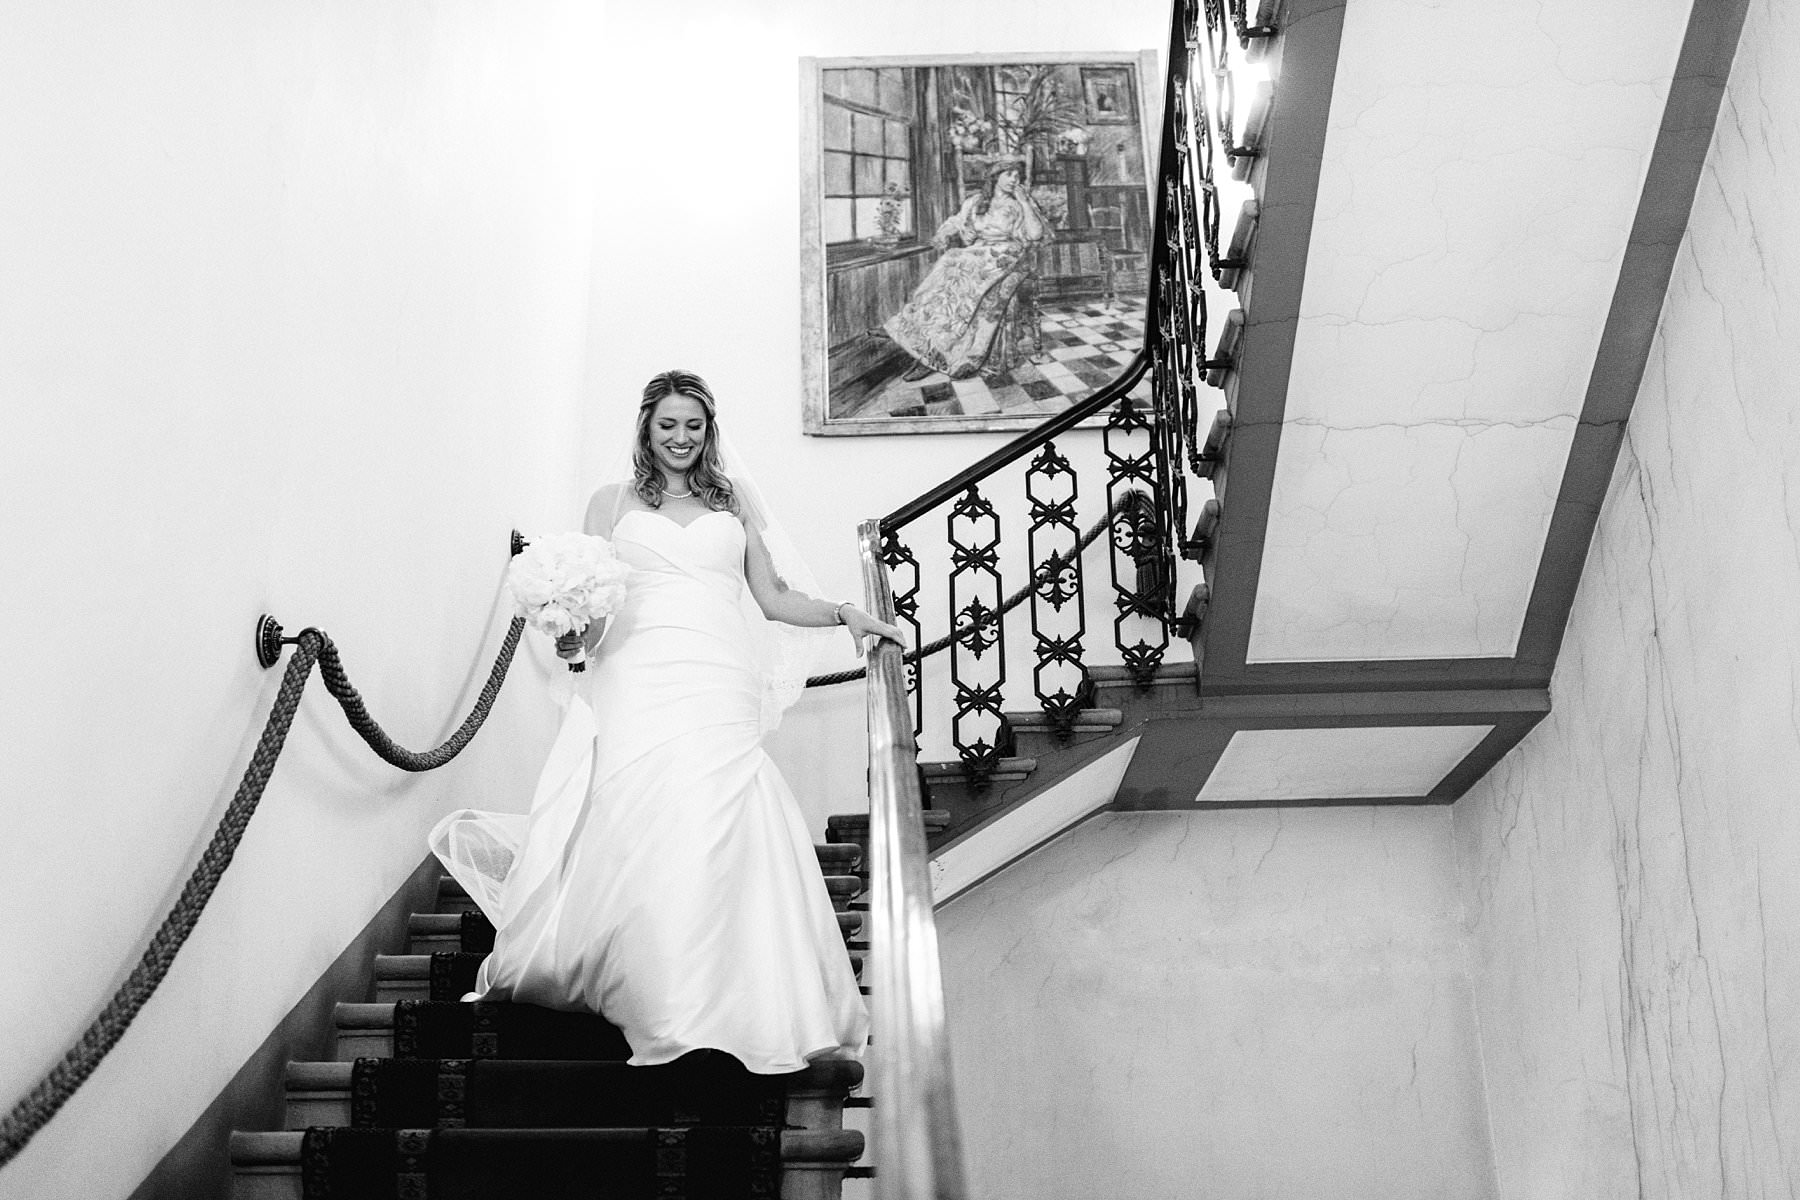 Palazzo Gondi and Grand Hotel Cavour, the best of Florence. Beautiful bride Beth just walks down the main staircase of Grand Hotel Cavour in Florence to go at Palazzo Gondi for her intimate destination wedding ceremony